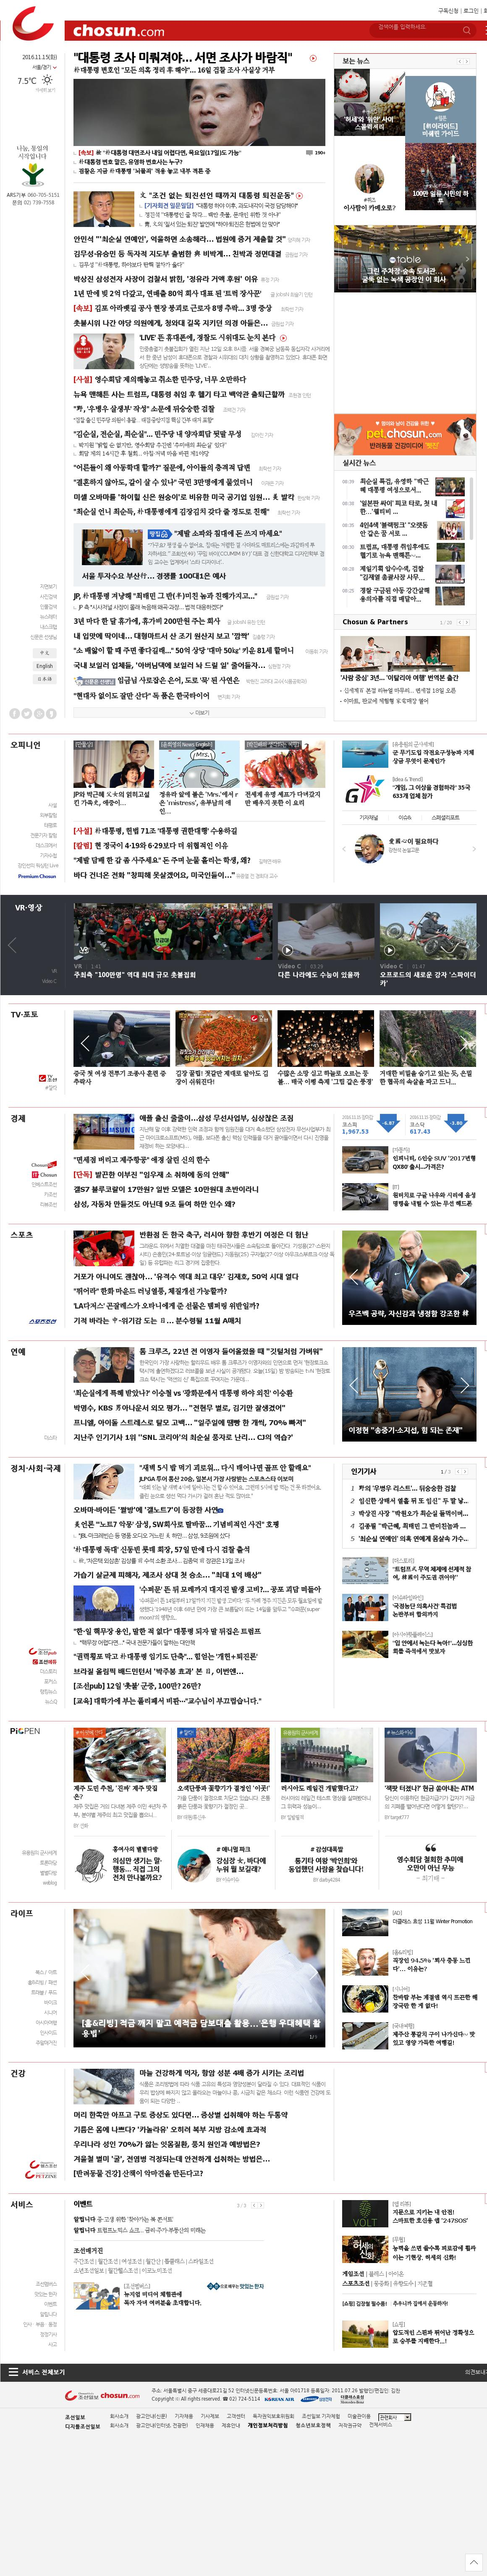 chosun.com at Tuesday Nov. 15, 2016, 9:02 a.m. UTC